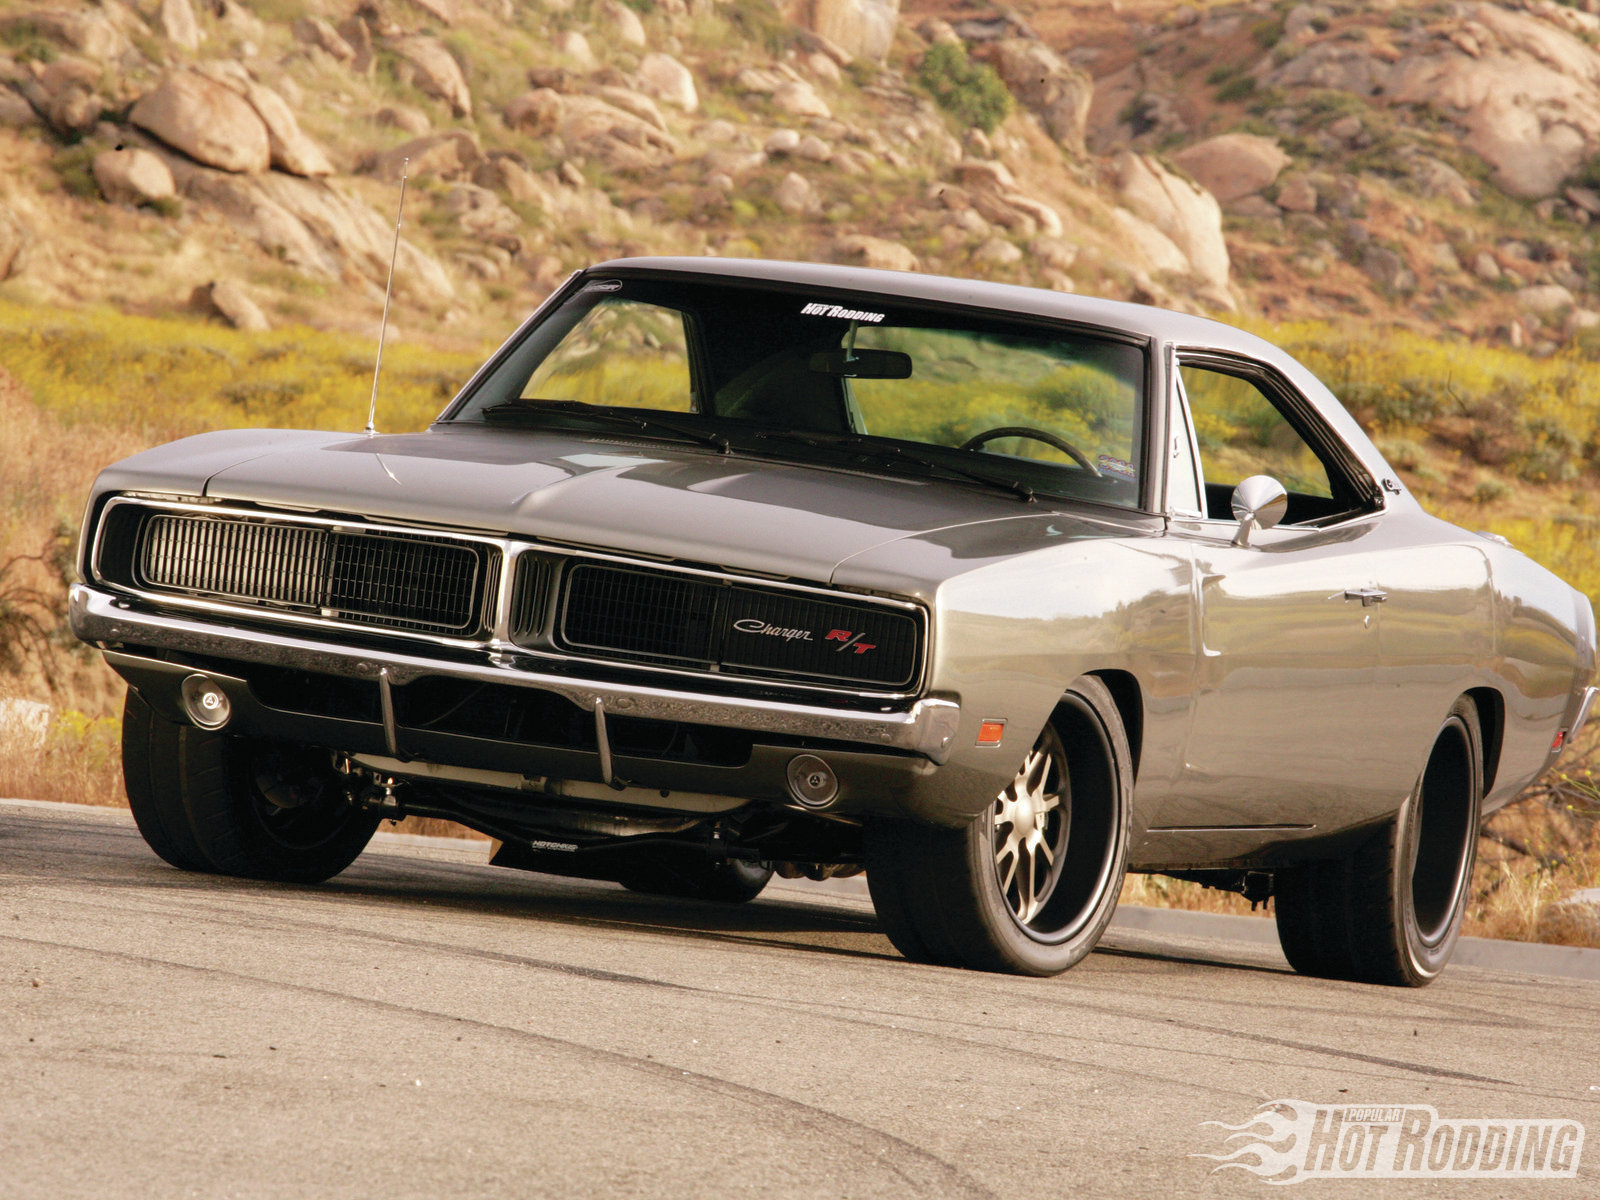 Dodge Charger photo 16